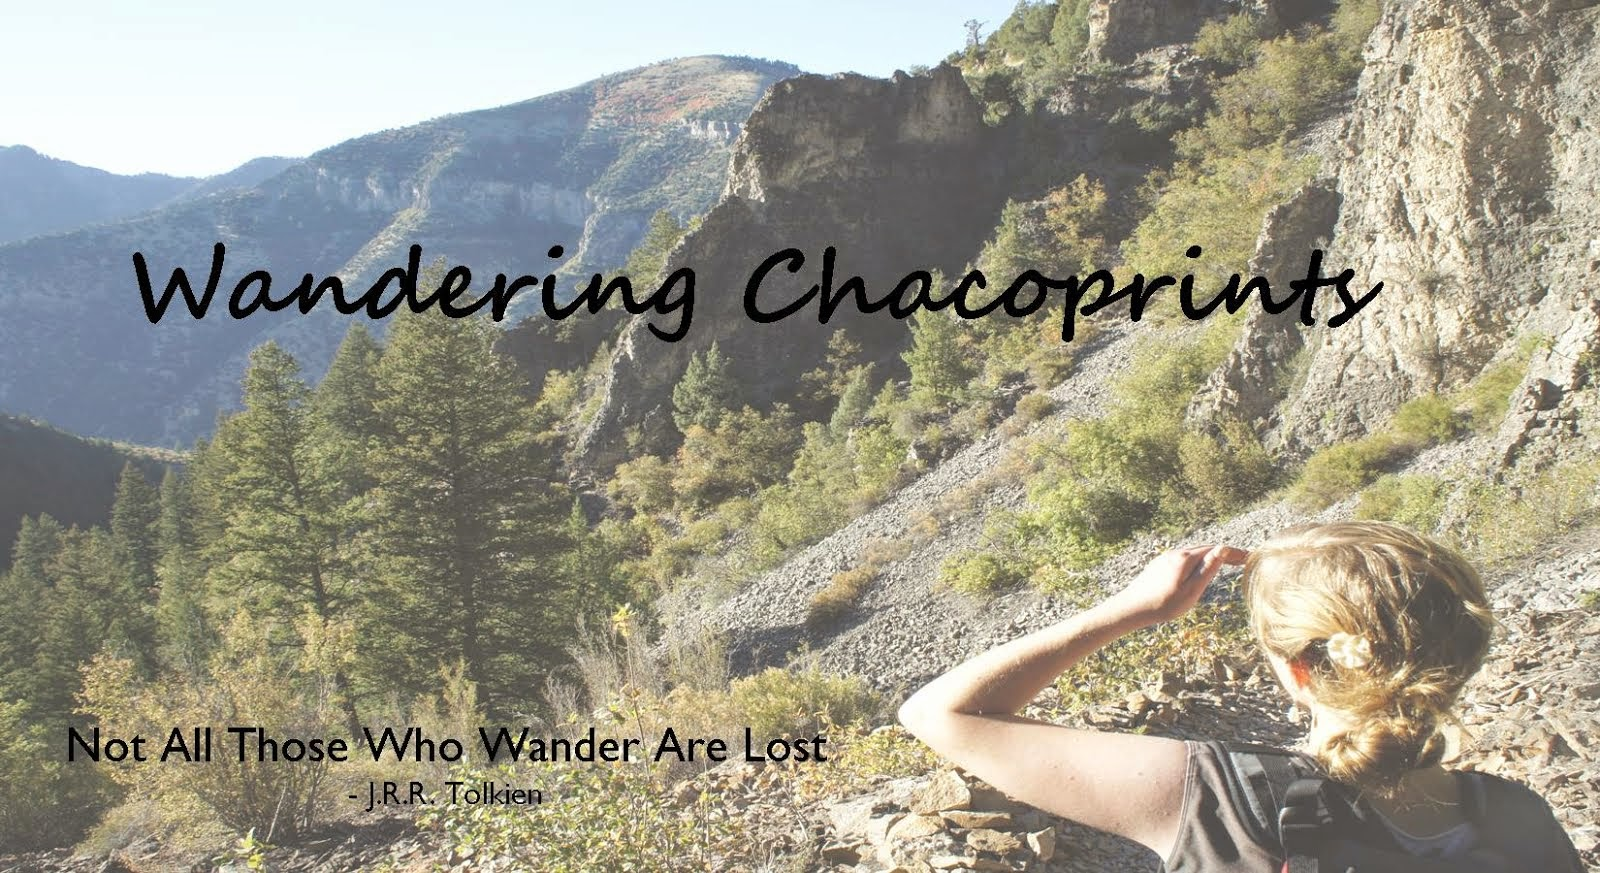 Wandering Chacoprints